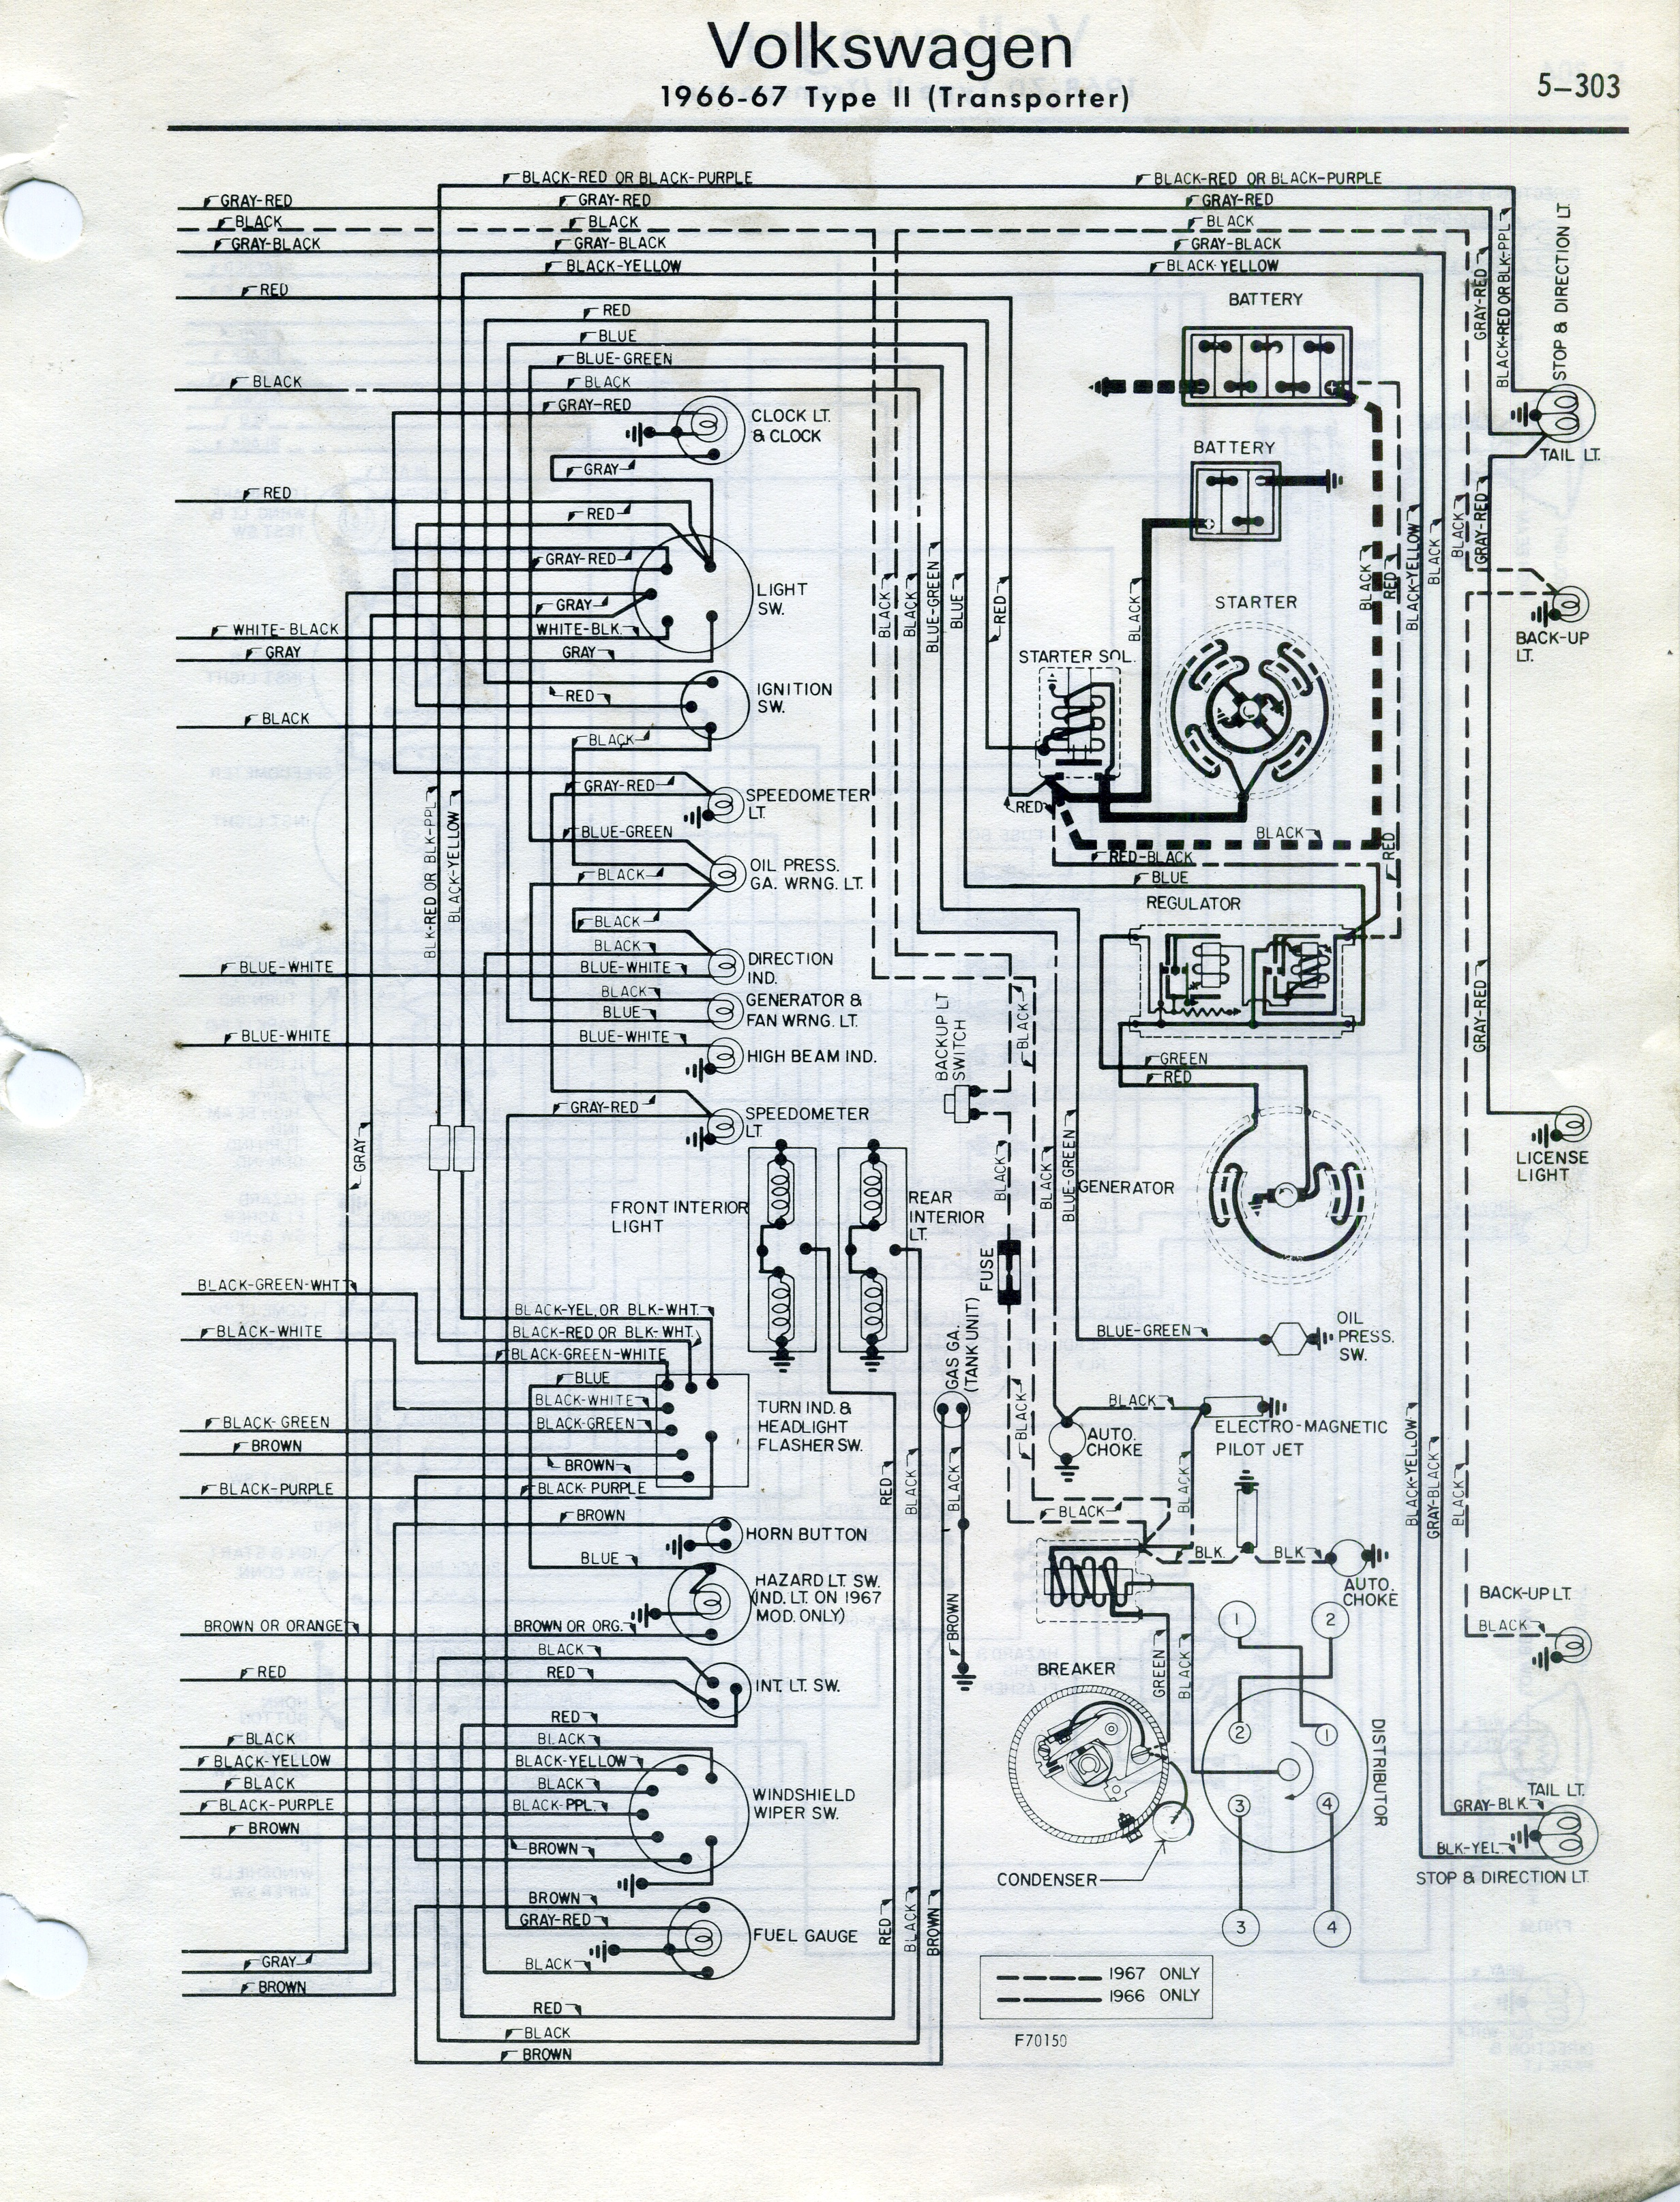 66_67Transporter_2_Mitchell?quality\\\\\\\=80\\\\\\\&strip\\\\\\\=all rm4 wiring diagram simple wiring diagram site